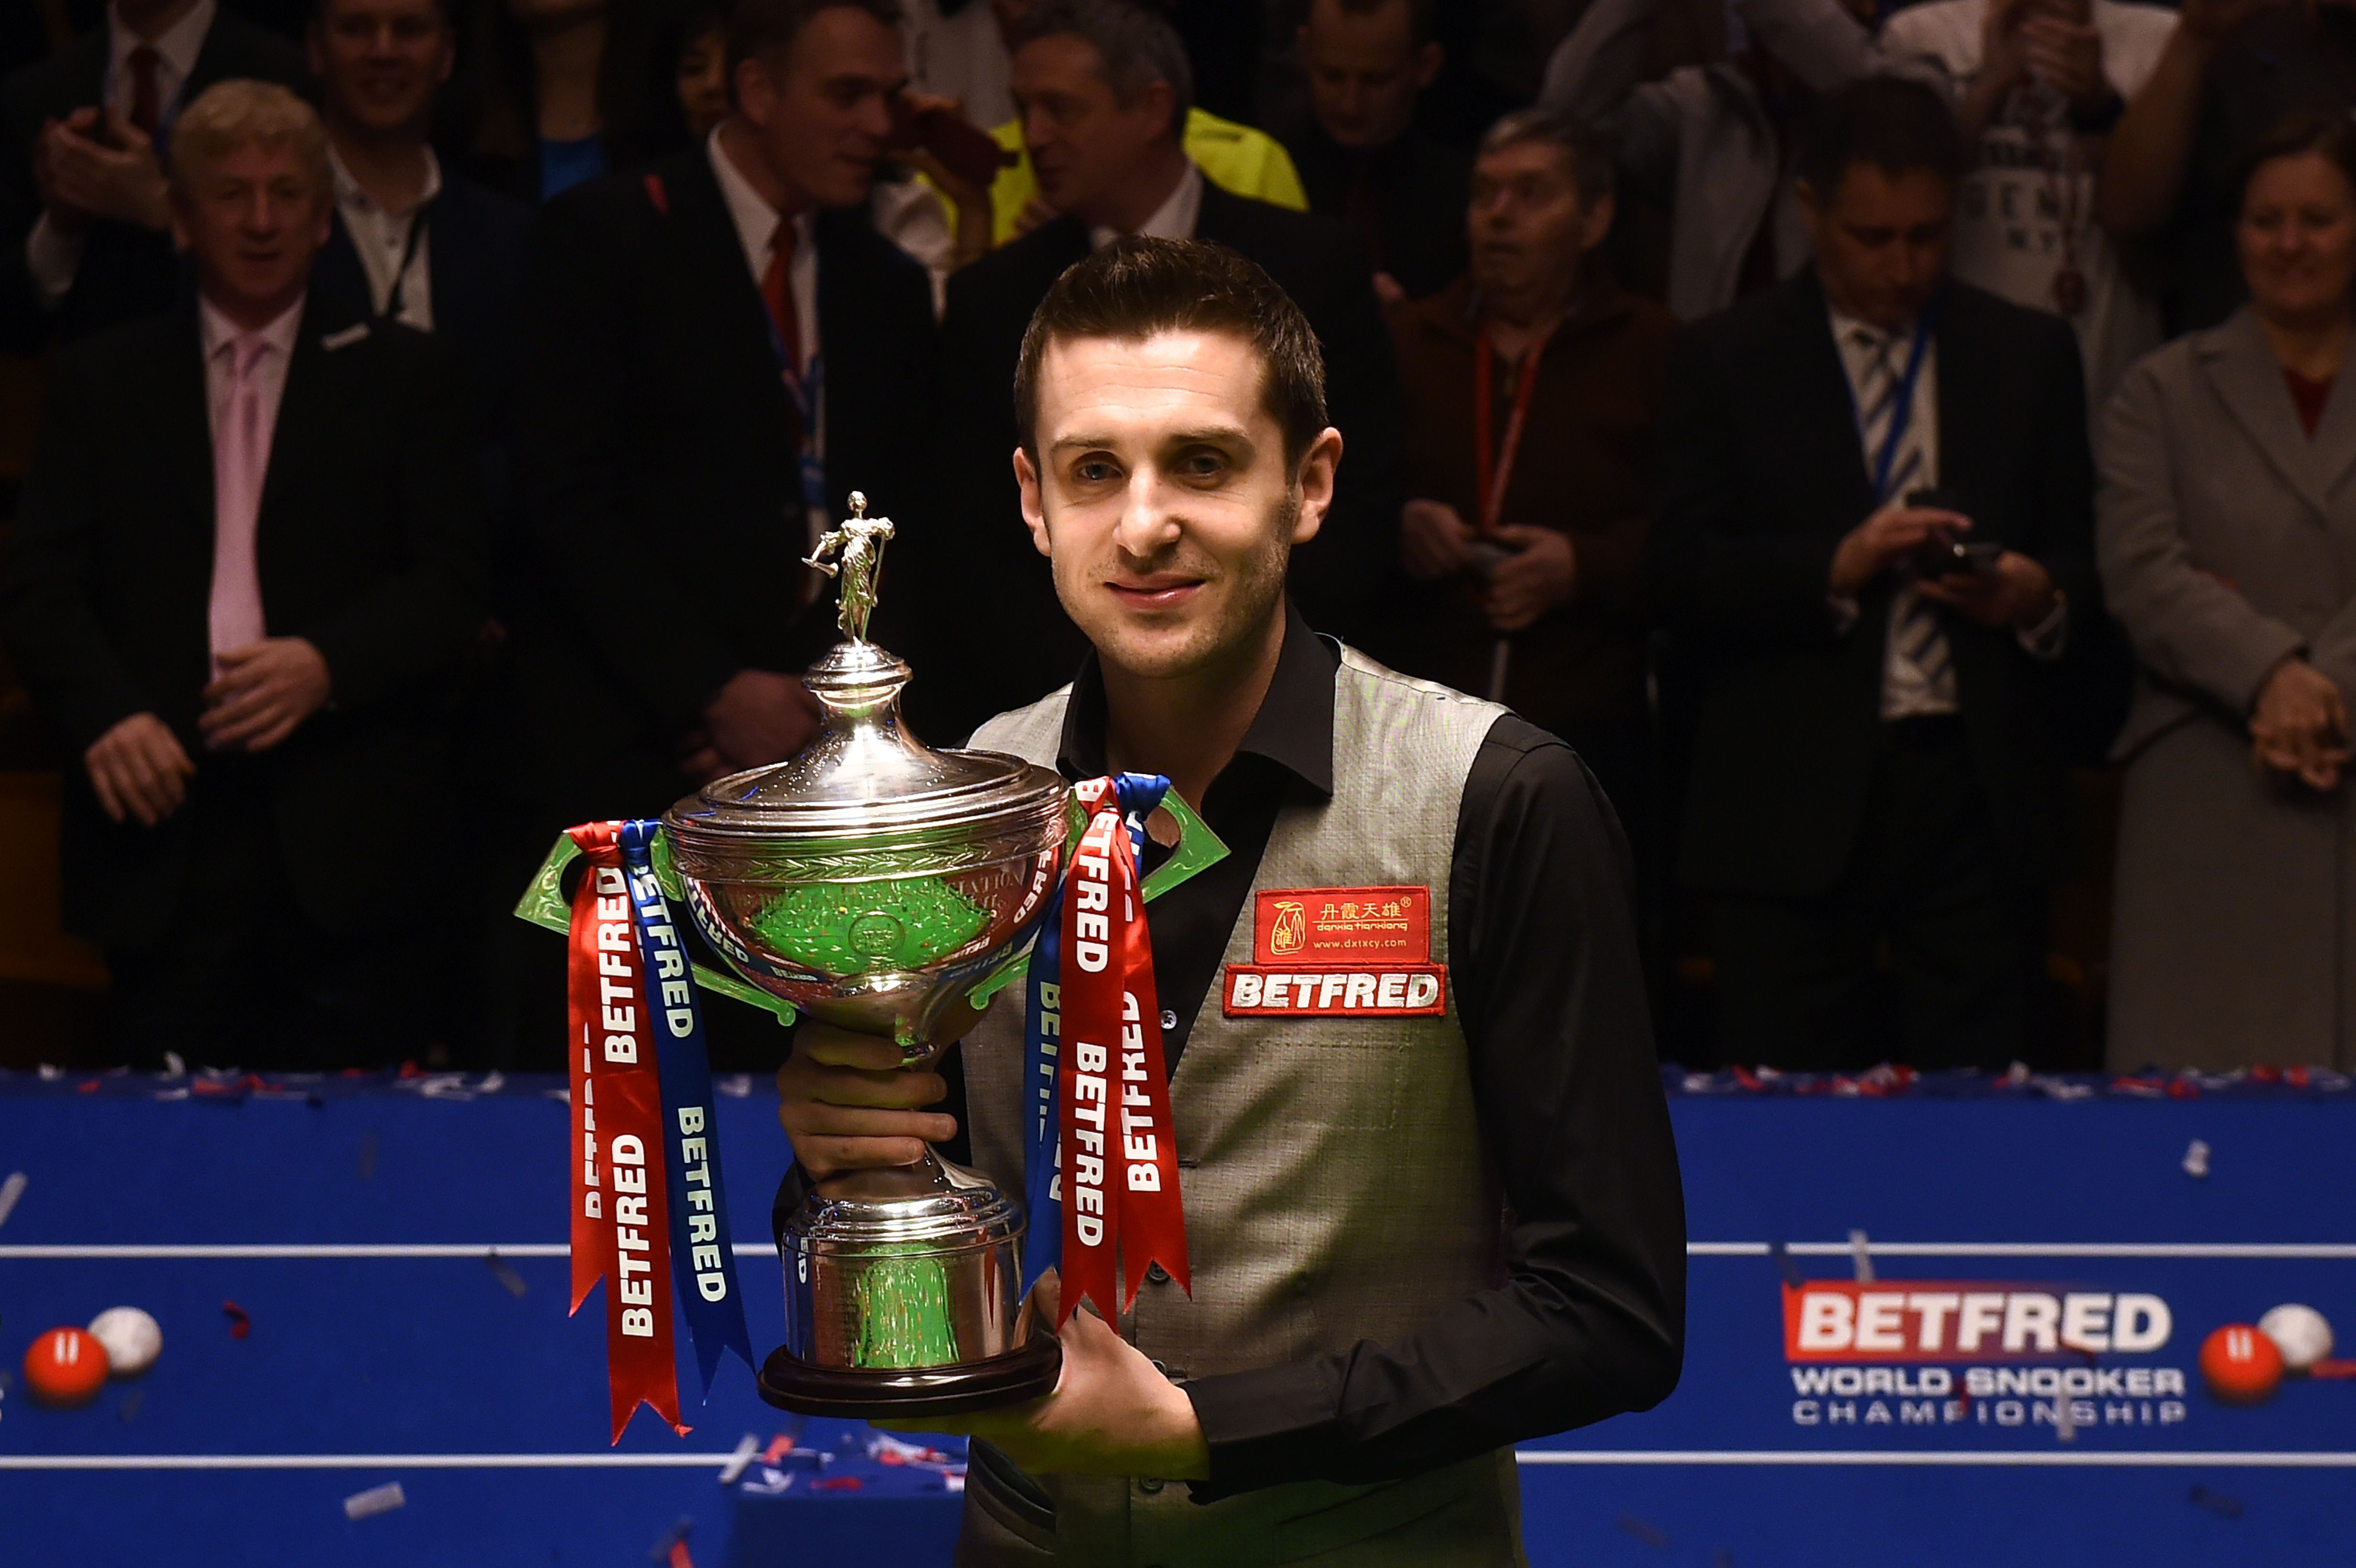 Mark Selby wins 2016 World Snooker Championship after beating Ding Junhui